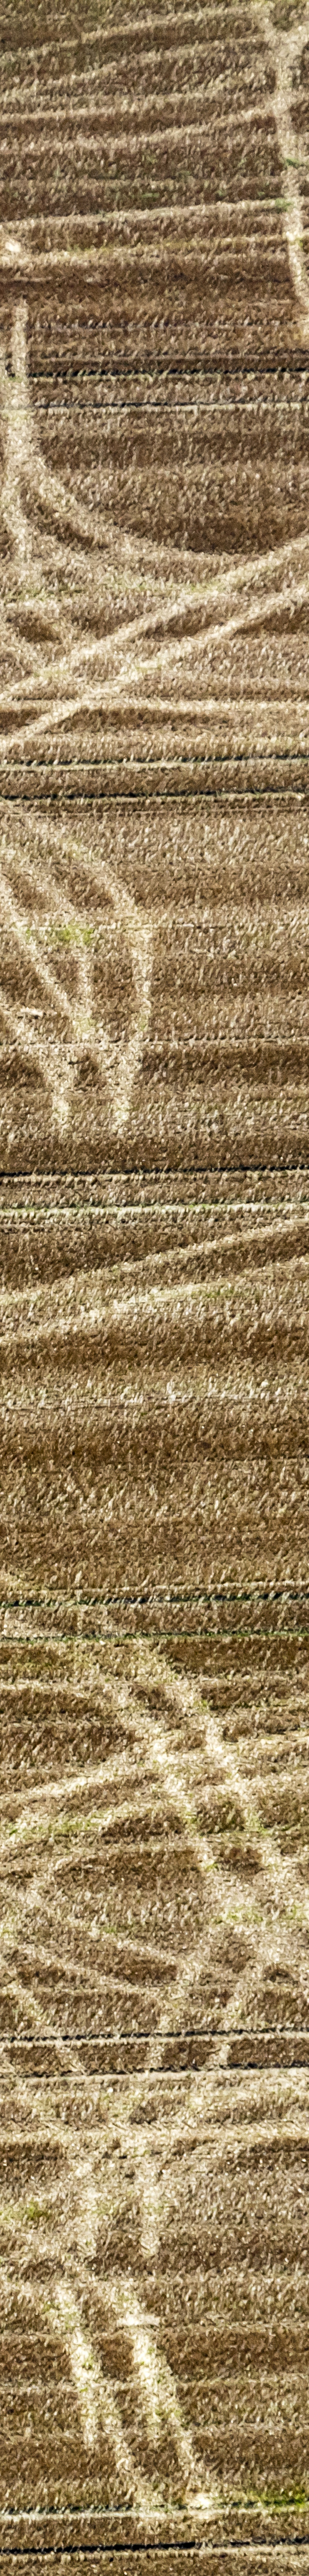 Aerial photograph of the tracks of a farmer's tractor on a stubble field - Klaus Leidorf Aerial Photography